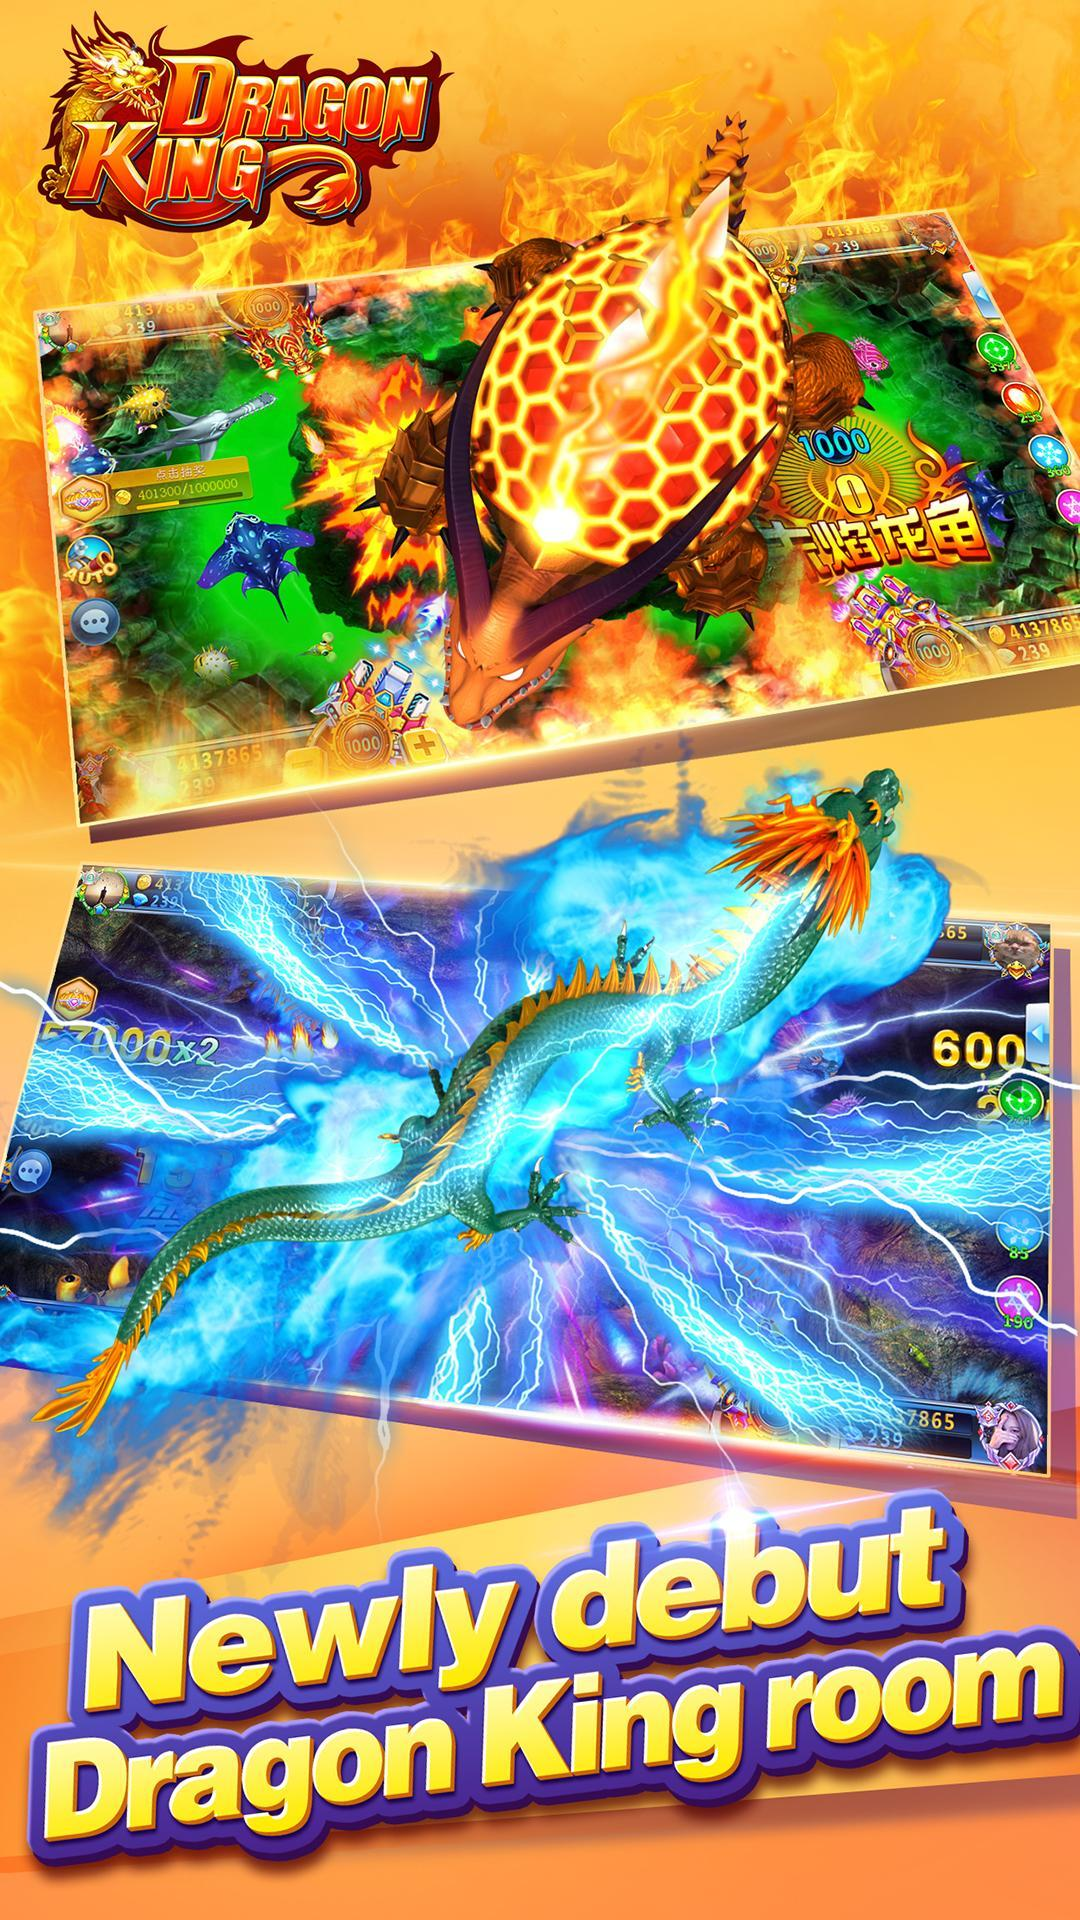 Dragon King Fishing Online-Arcade  Fish Games 5.2.0 Screenshot 24